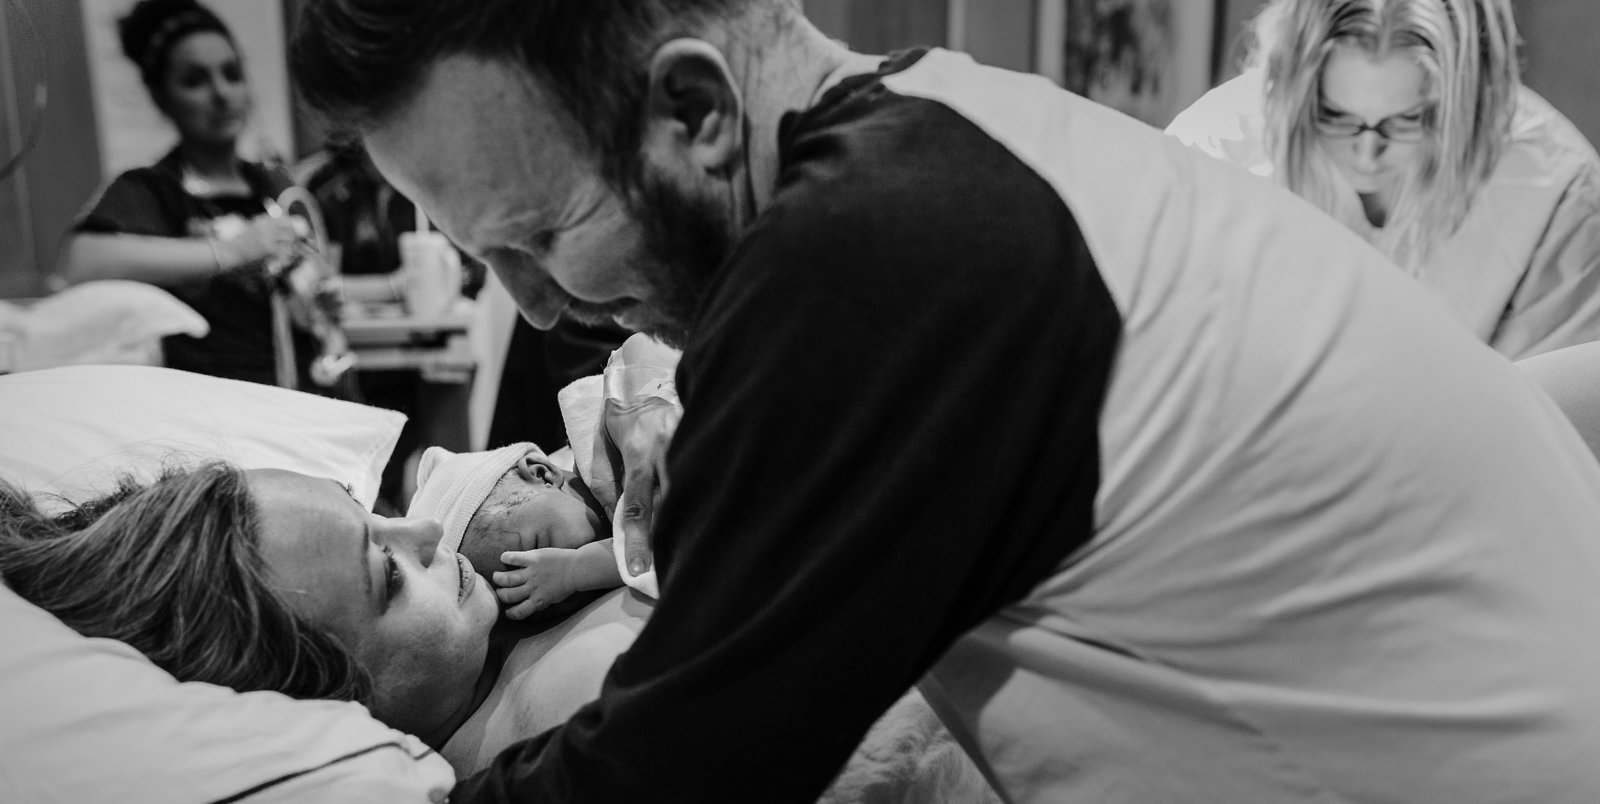 charlotte birth photographer jamie lucido captures a beautiful image as newborn is placed on mother and father embraces them both as midwife delivers the placenta